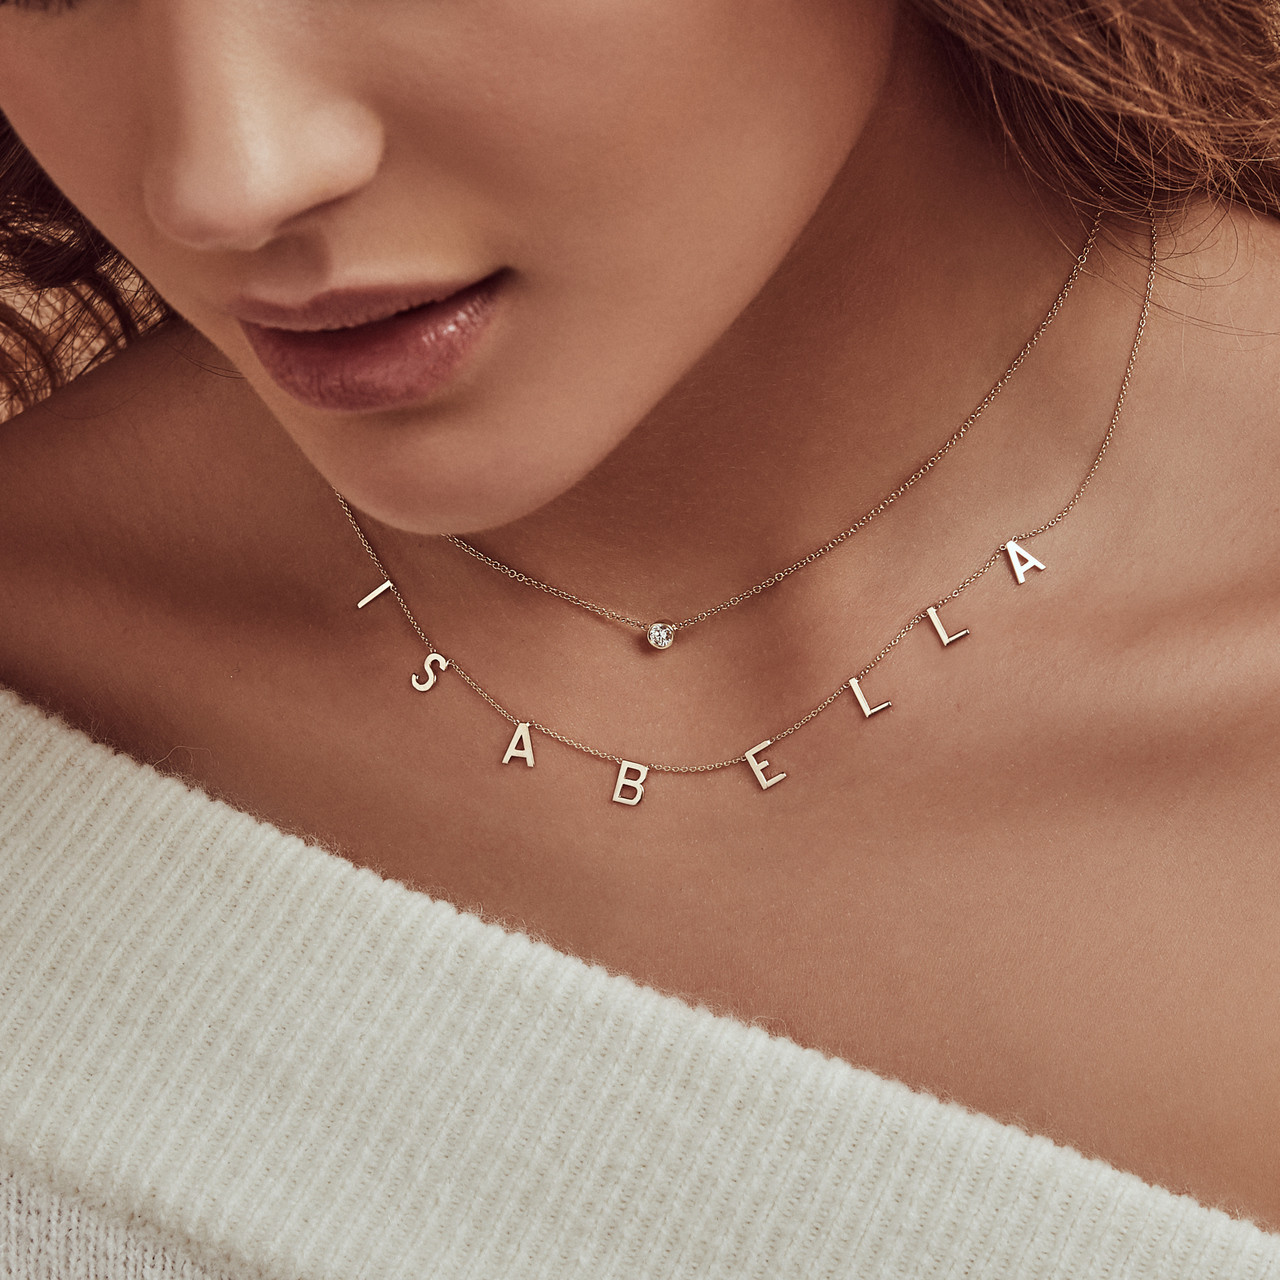 14K Gold Spaced Initials Necklace with Bezel Diamond